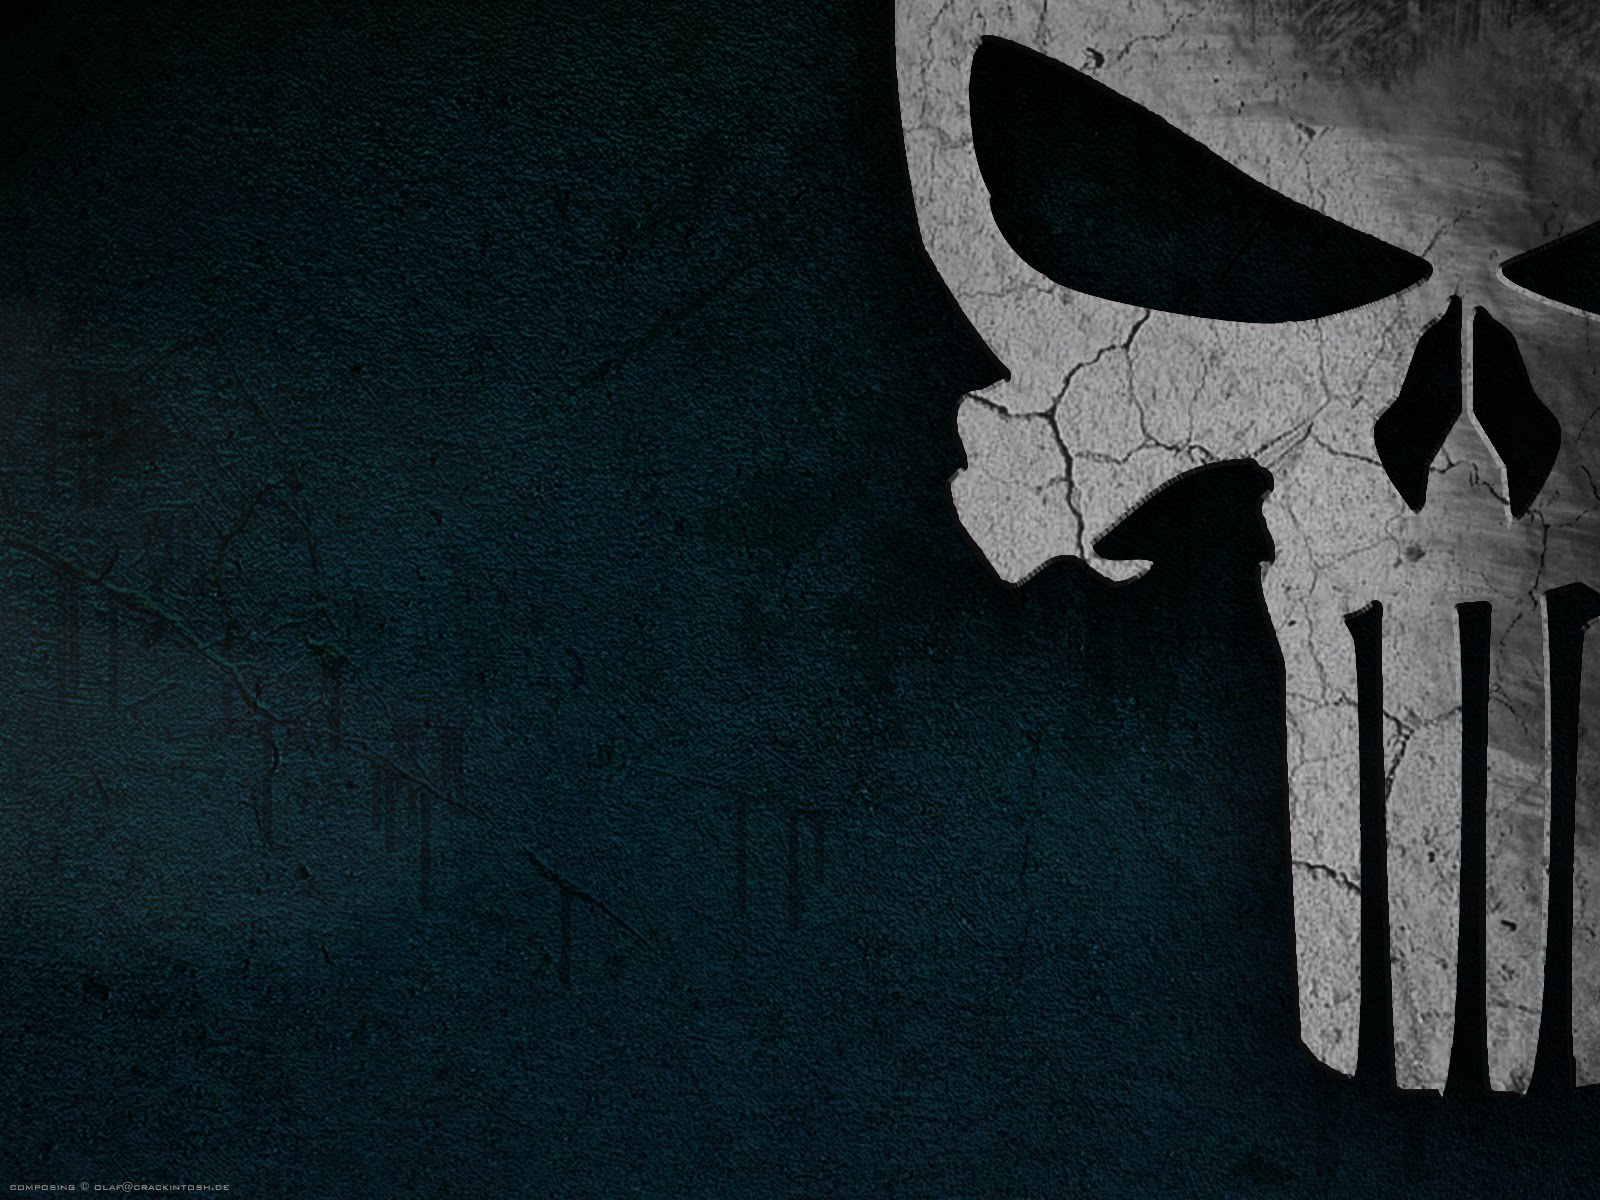 Punisher skull wallpaper |Clickandseeworld is all about ...